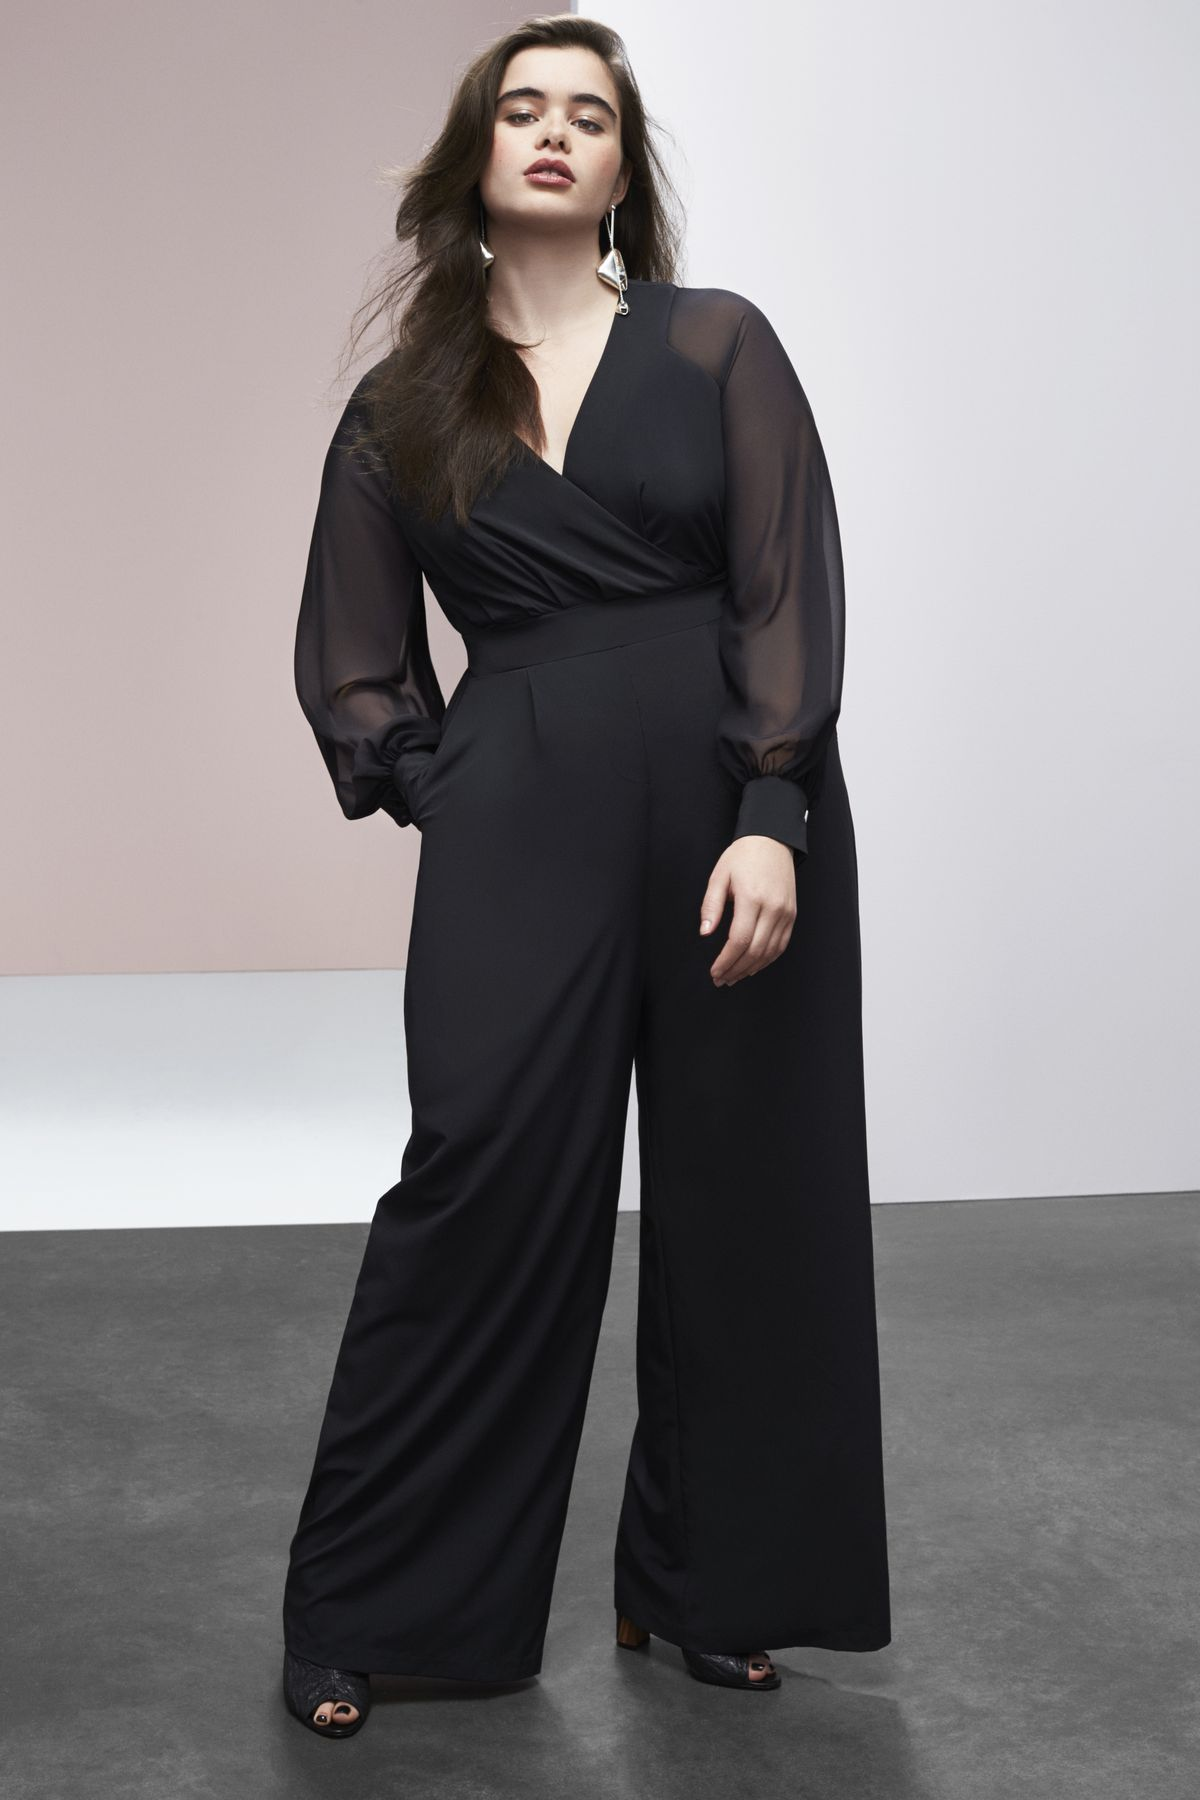 80fff6b3a75 Lane Bryant s Prabal Gurung Collab Is Here - Racked